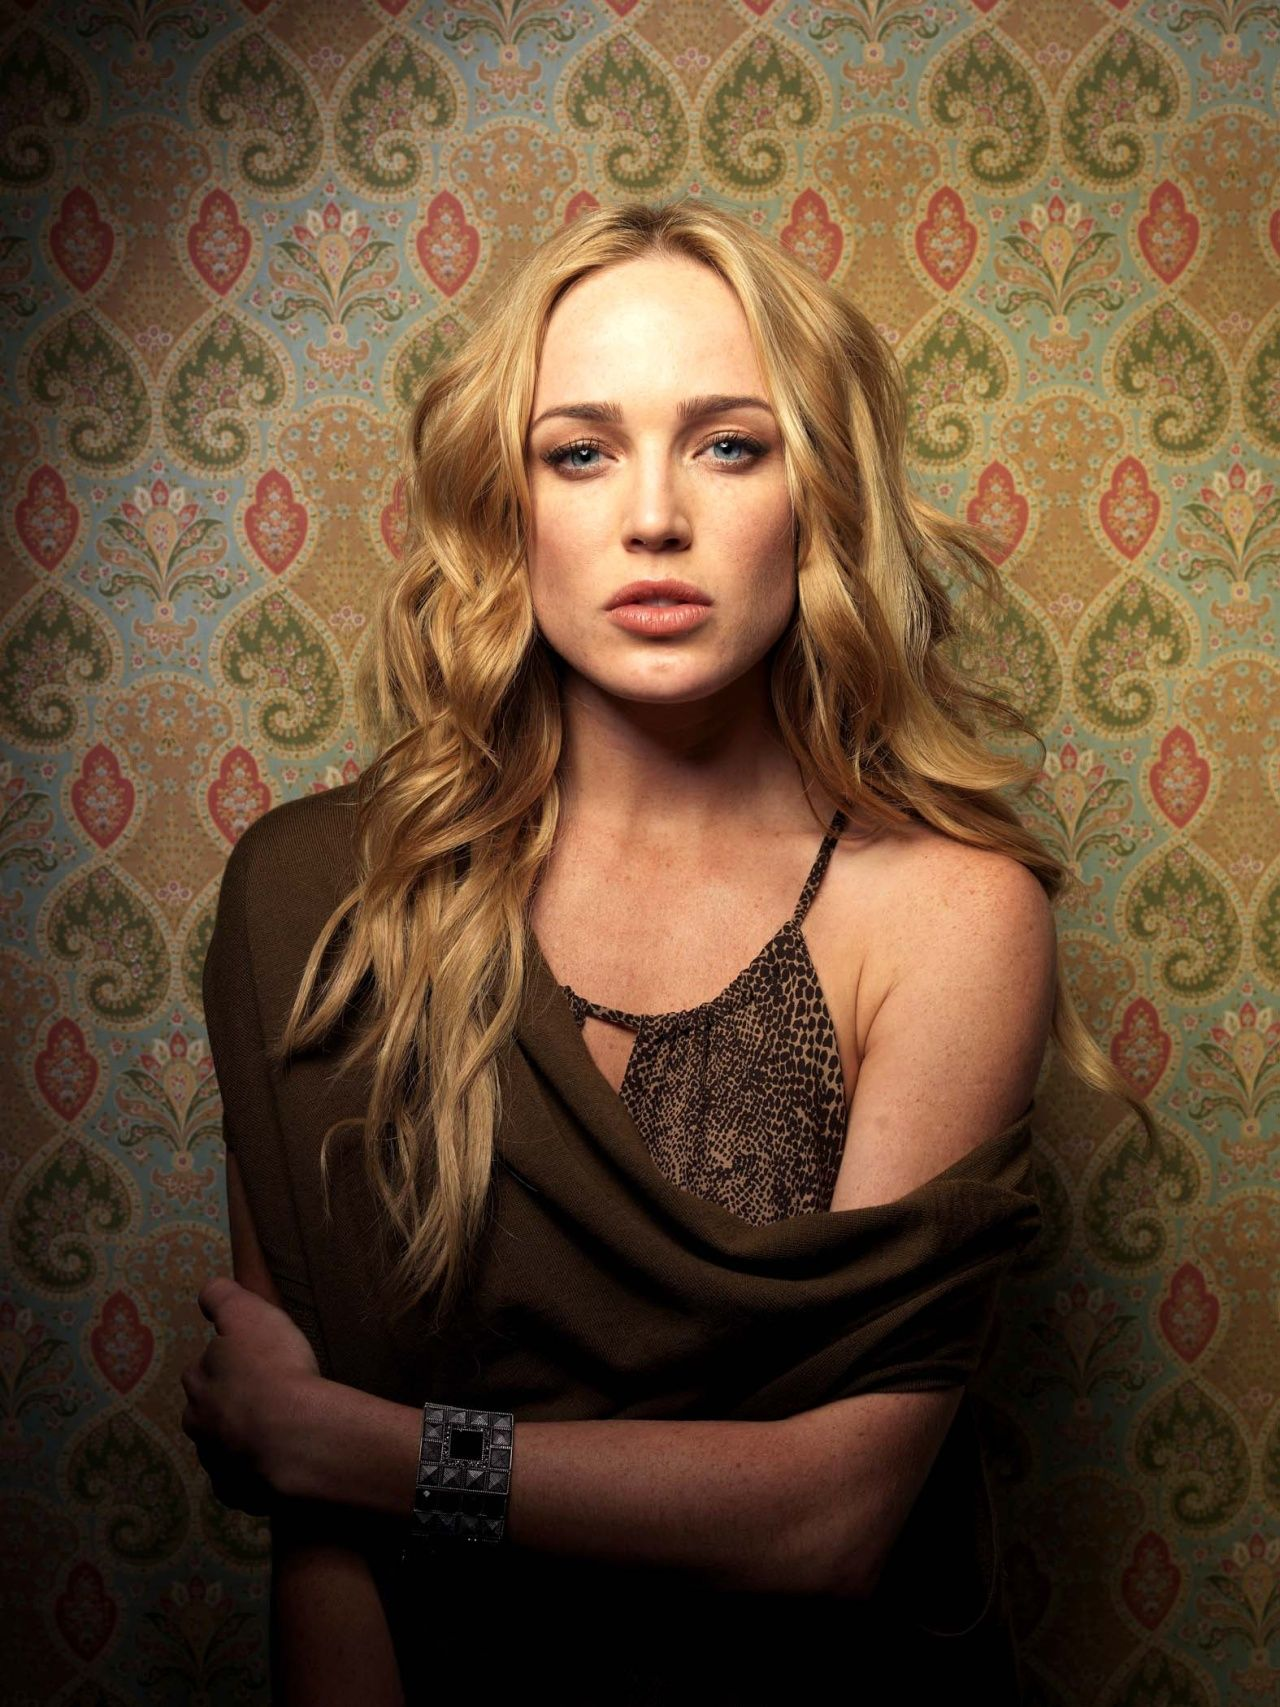 hot tv babe of the week��caity lotz ��������